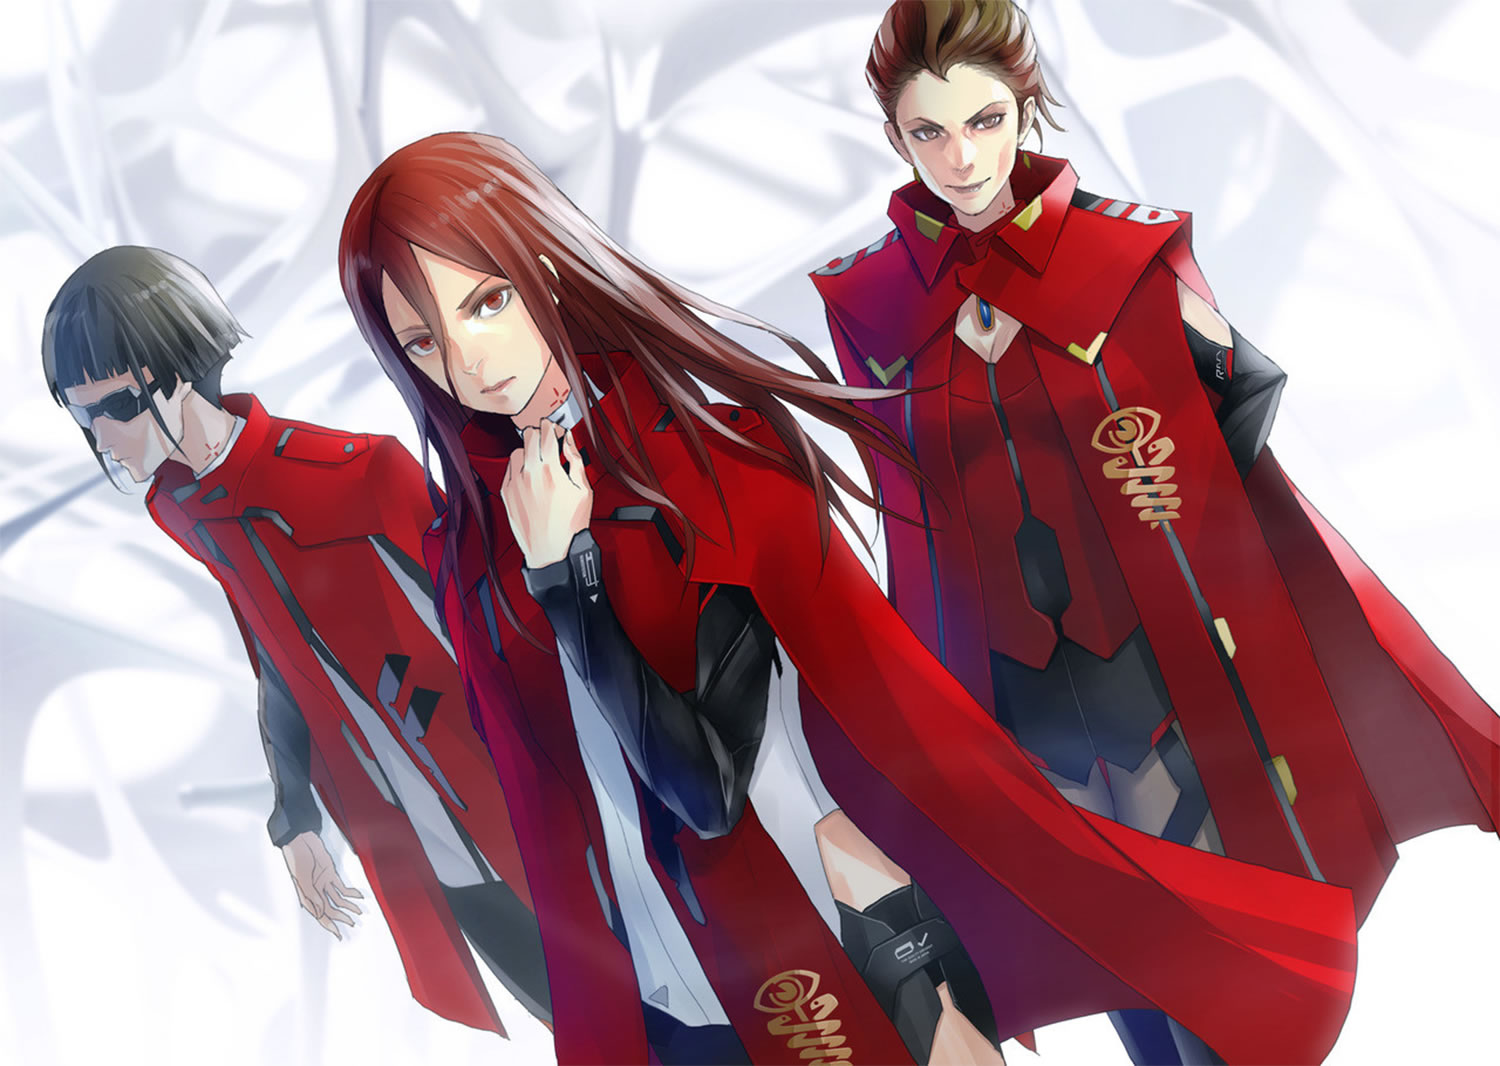 Futuristic Women Dressed In Red Harmony Anime